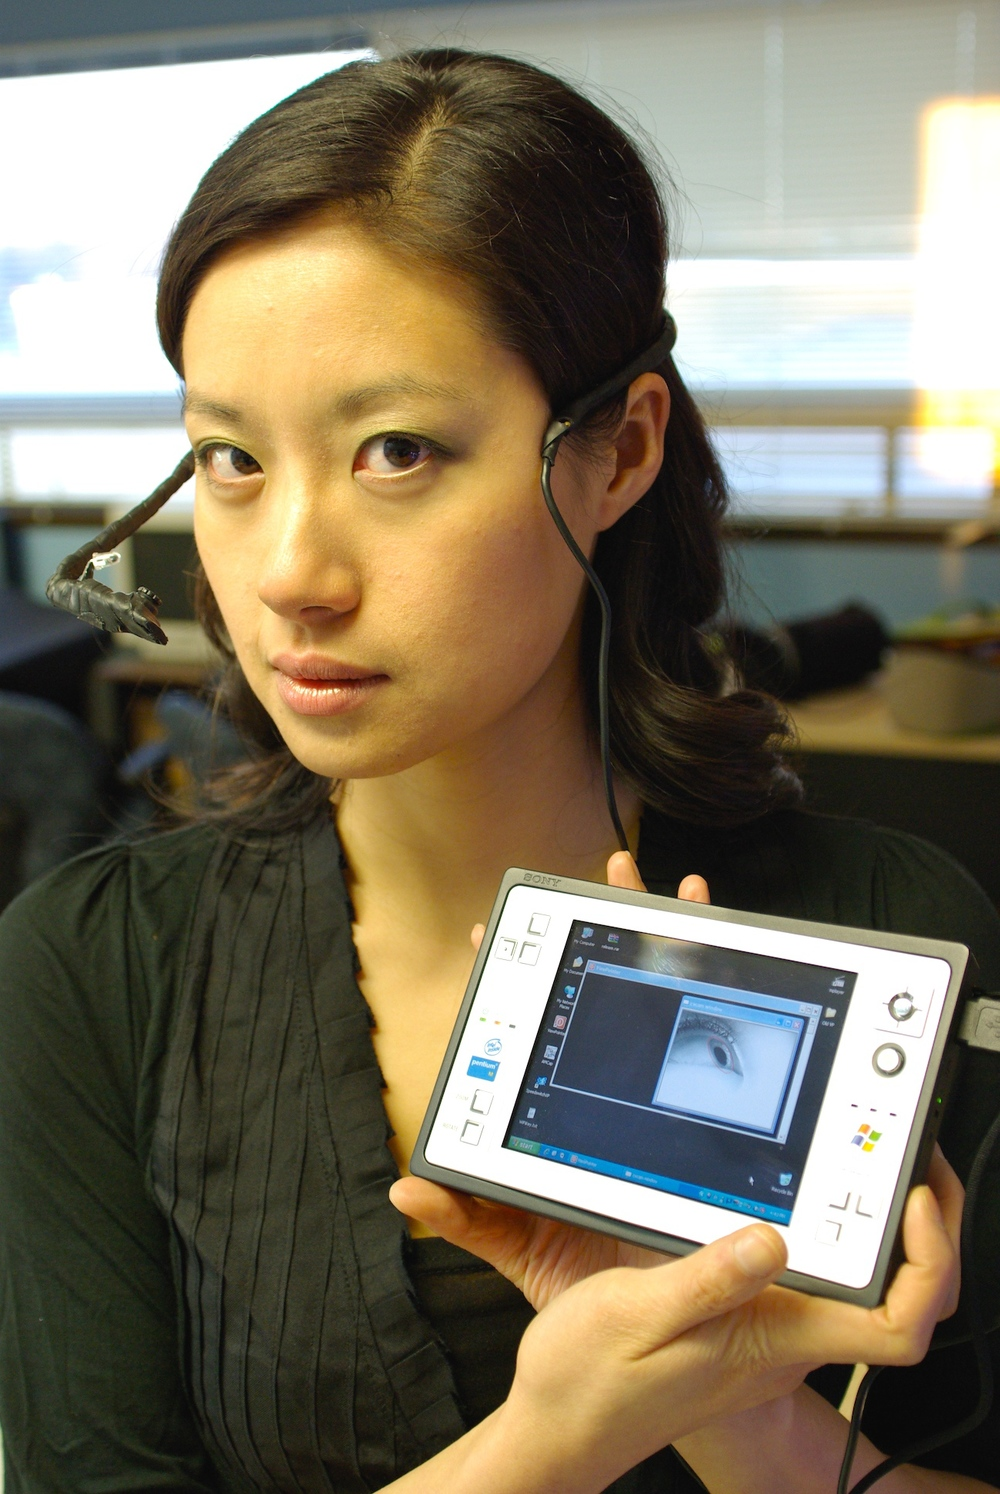 viewpointer (2005) mobile calibration-free eye tracker